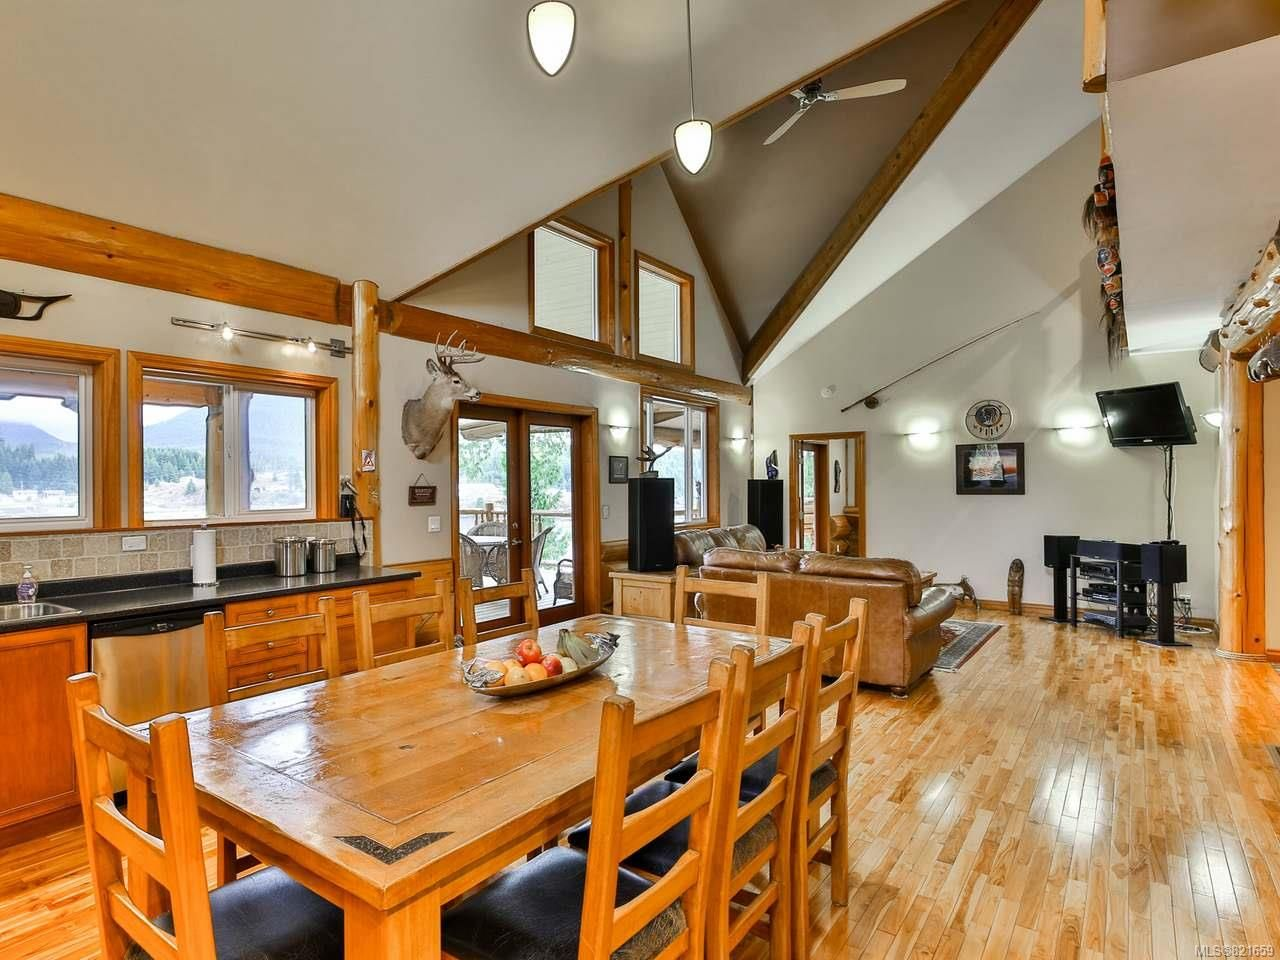 Photo 10: Photos: 1049 Helen Rd in UCLUELET: PA Ucluelet House for sale (Port Alberni)  : MLS®# 821659